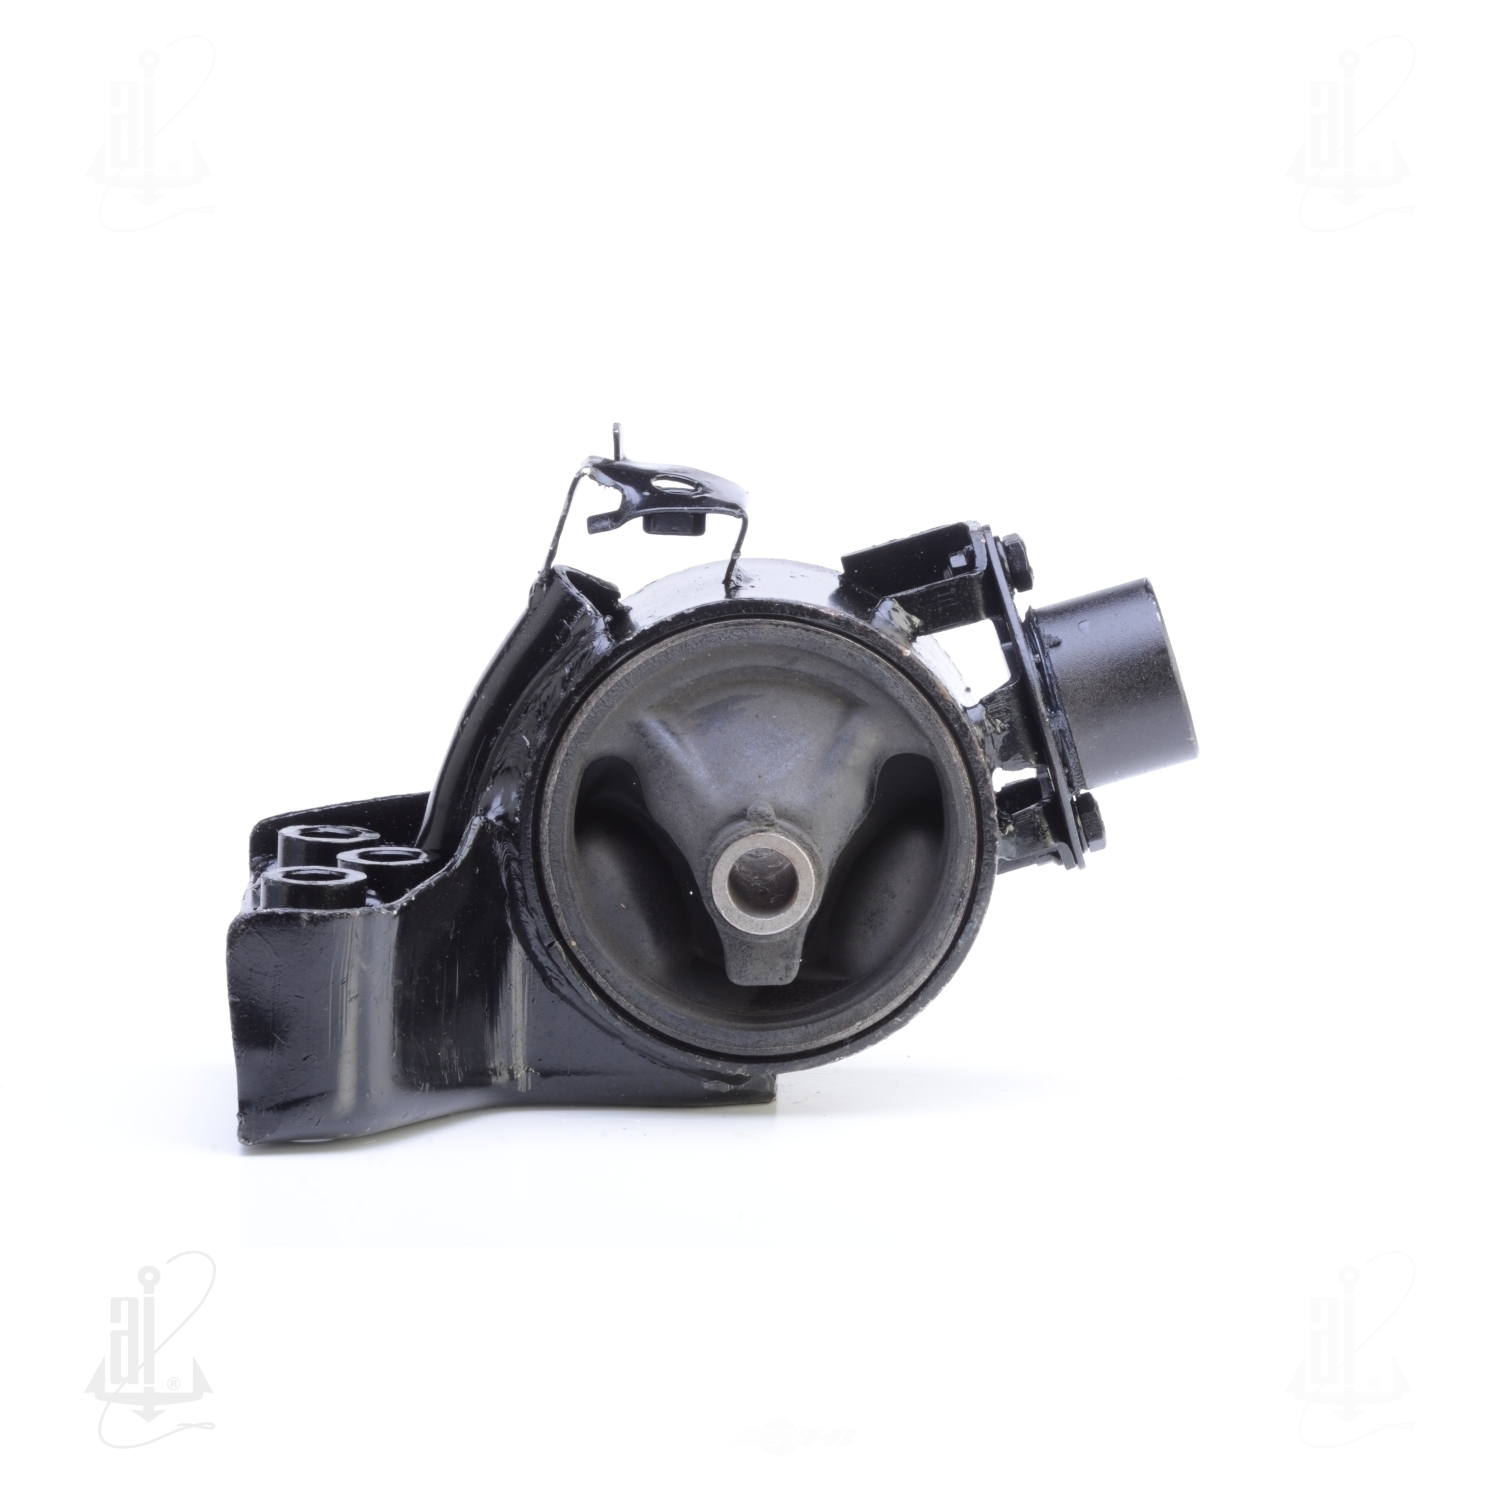 Anchor Motor Mounts 8877 - Transmission Mount - 8877